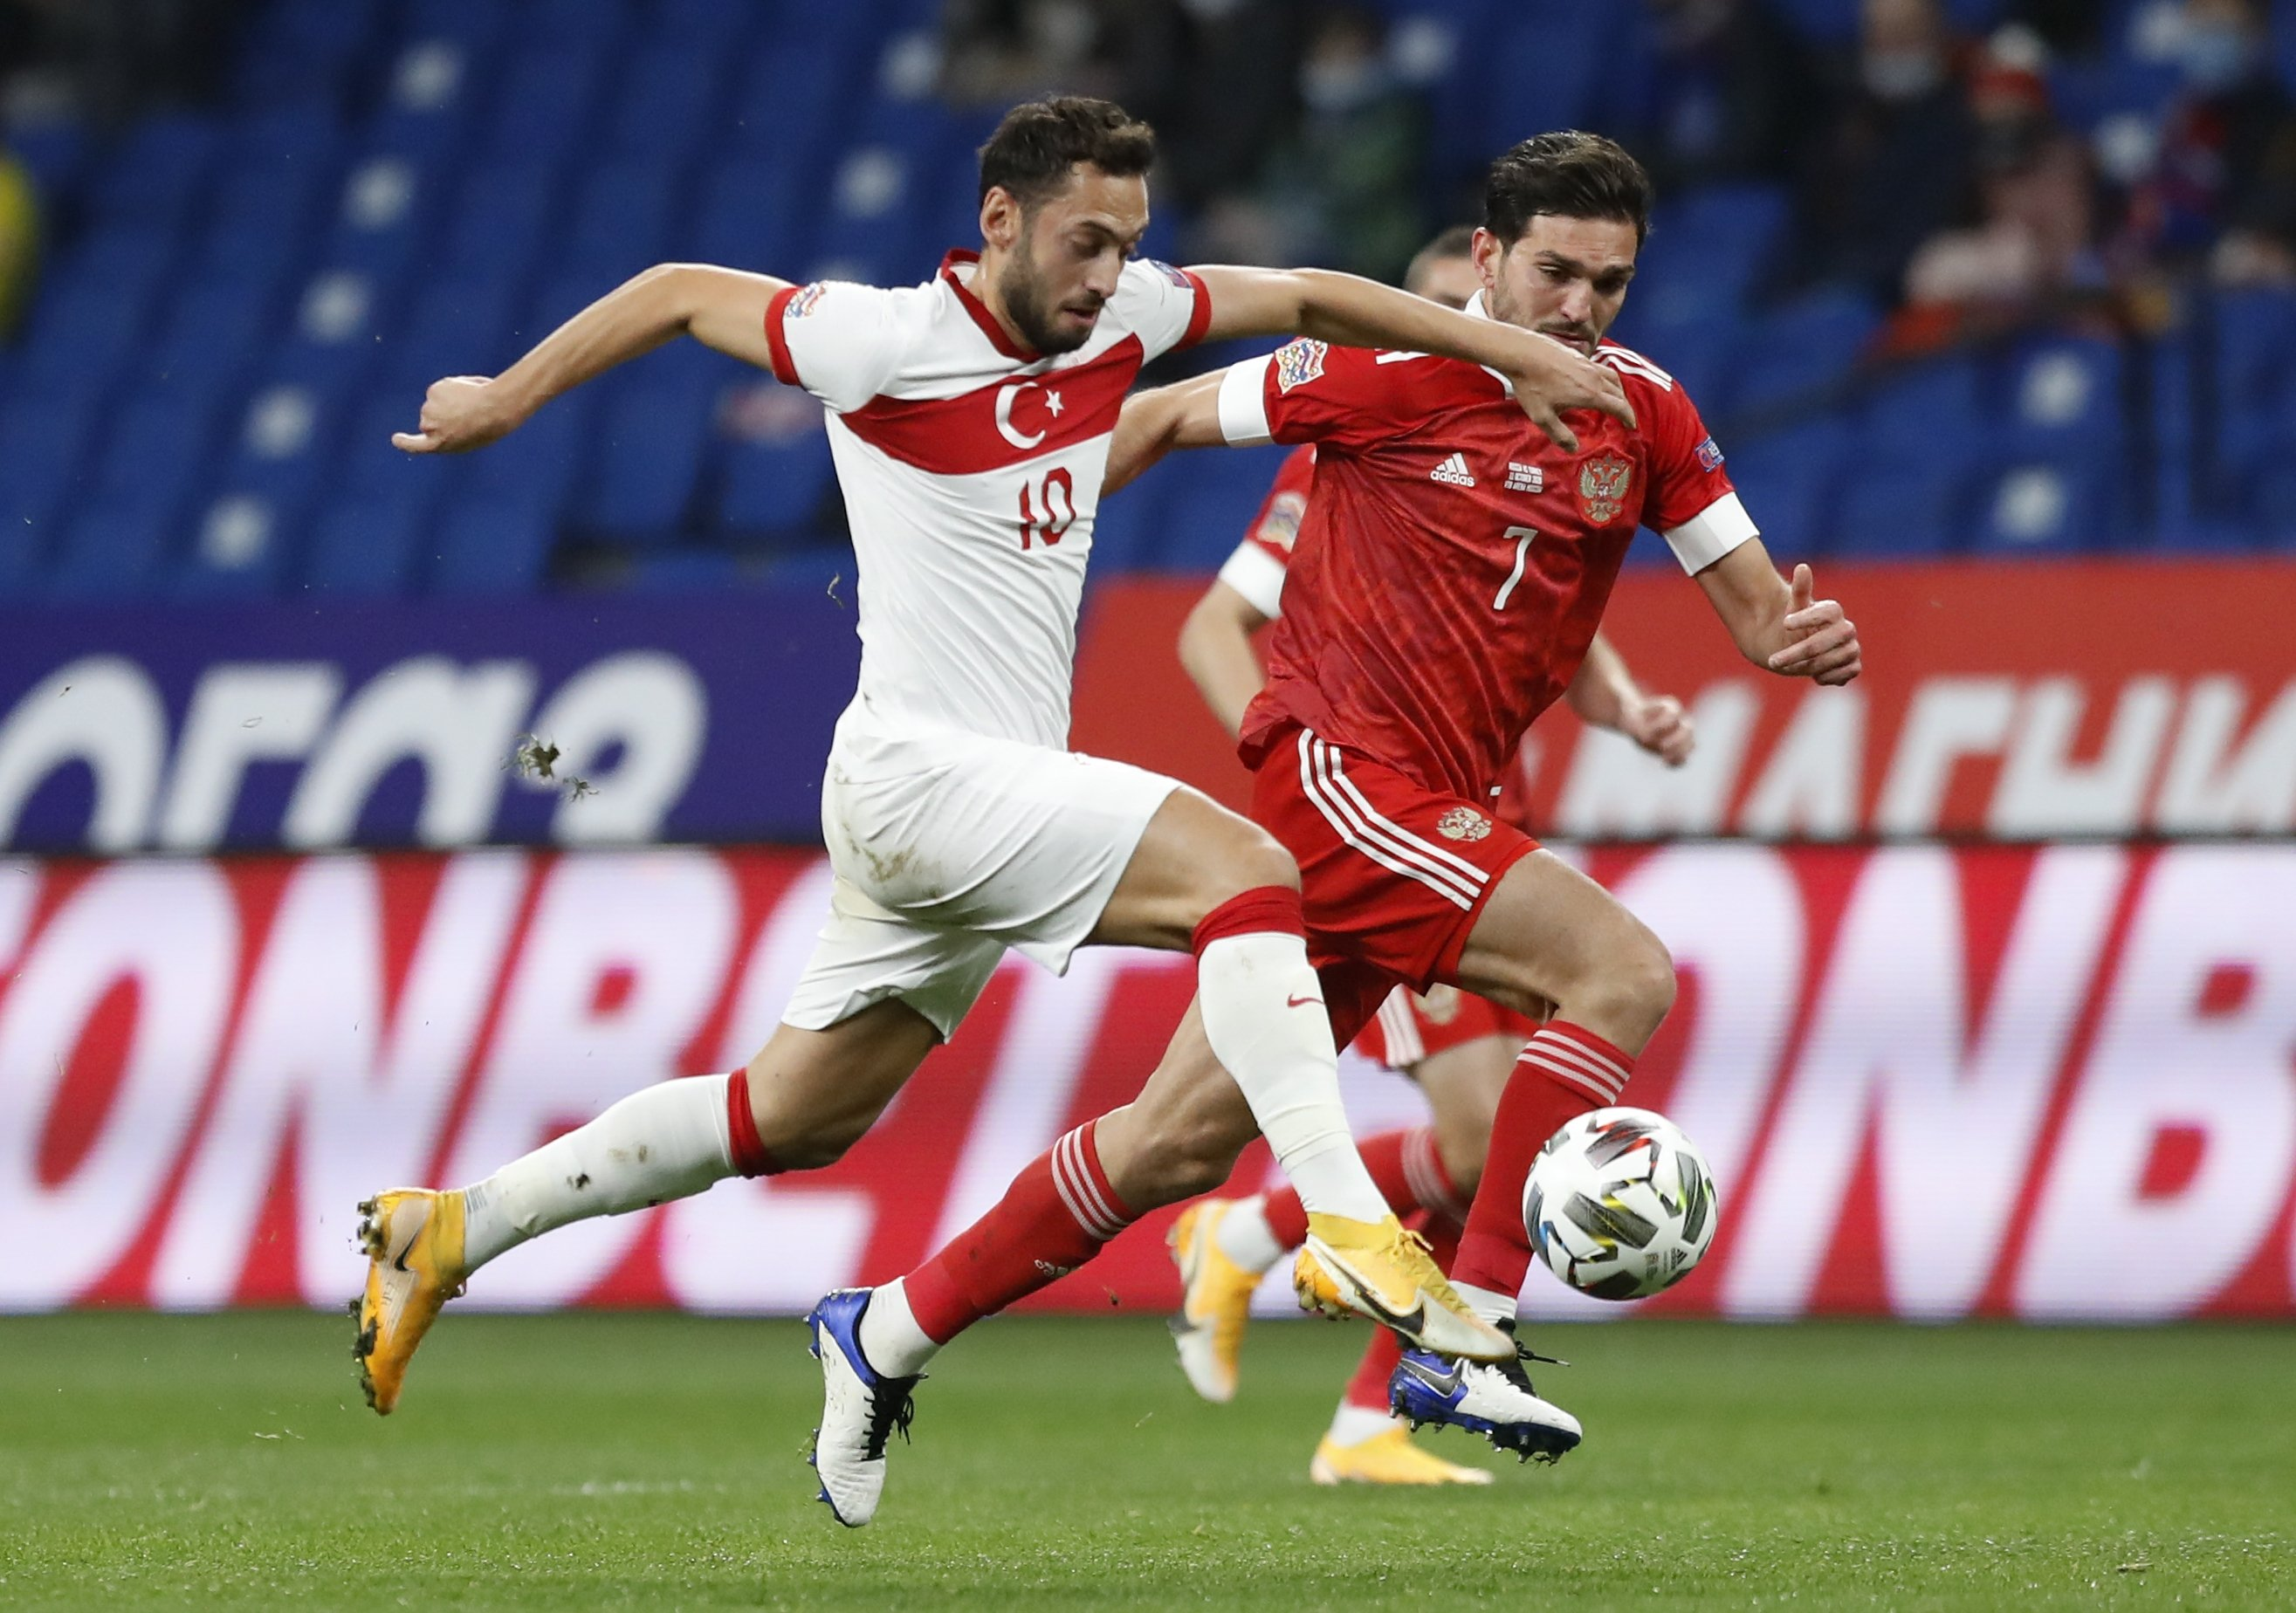 Turkey's Hakan Çalhanoğlu (L) plays the ball past Russia's Magomed Ozdoyev during a UEFA Nations League match at Dinamo Stadium, Moscow, Russia, Oct. 11, 2020. (AP Photo)